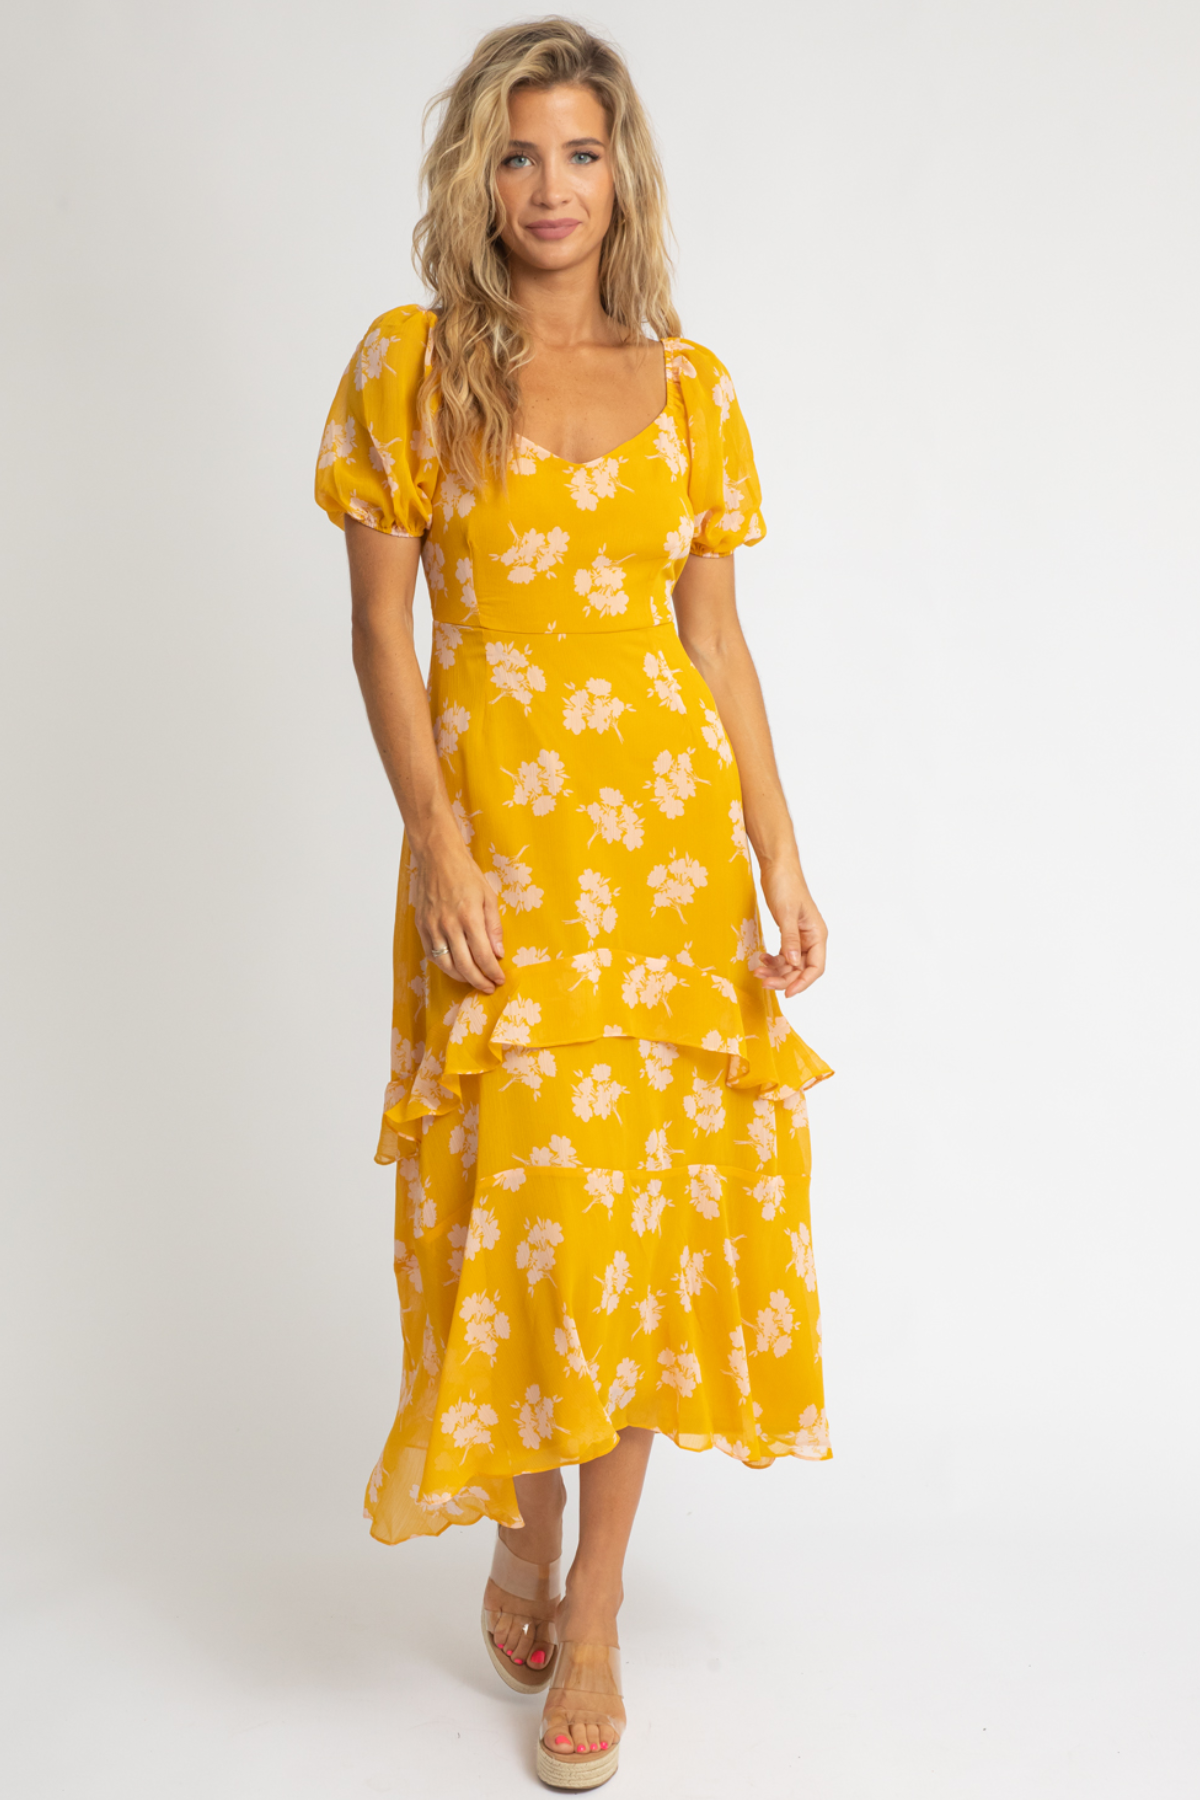 YELLOW FLORAL WOVEN DRESS